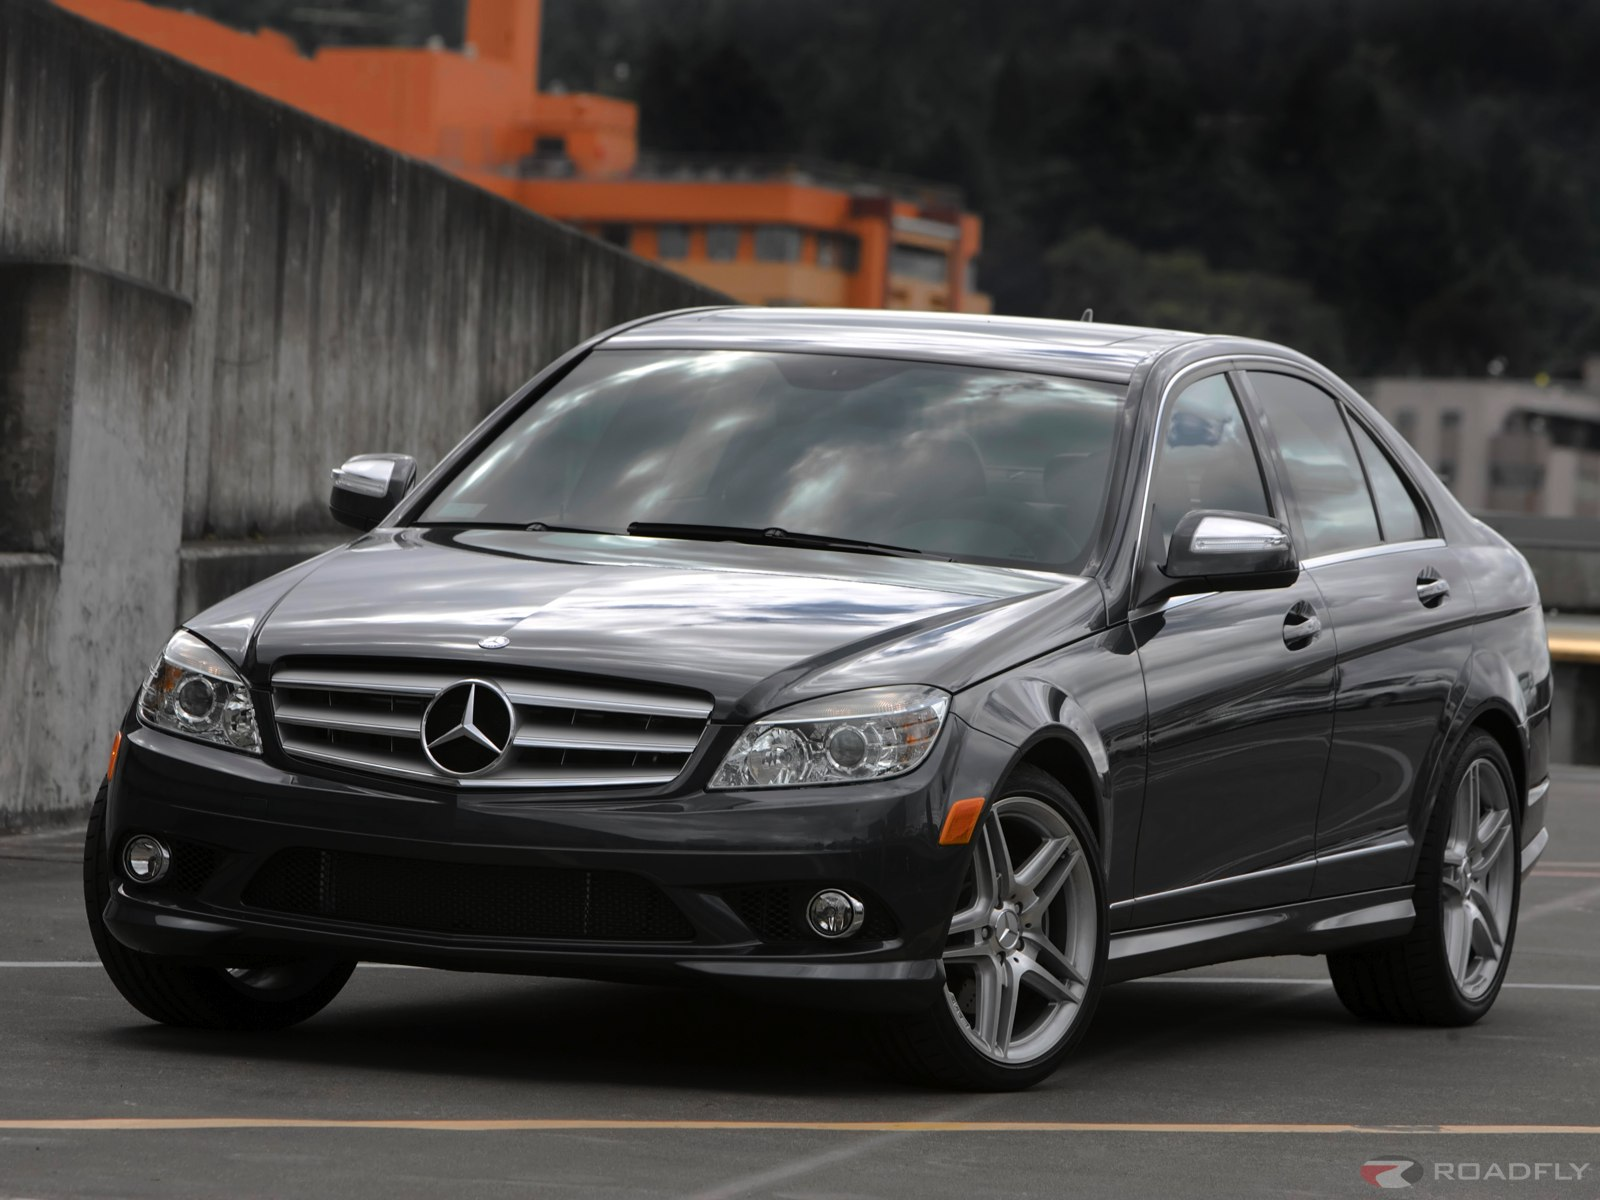 Mercedes Benz C Class Overview